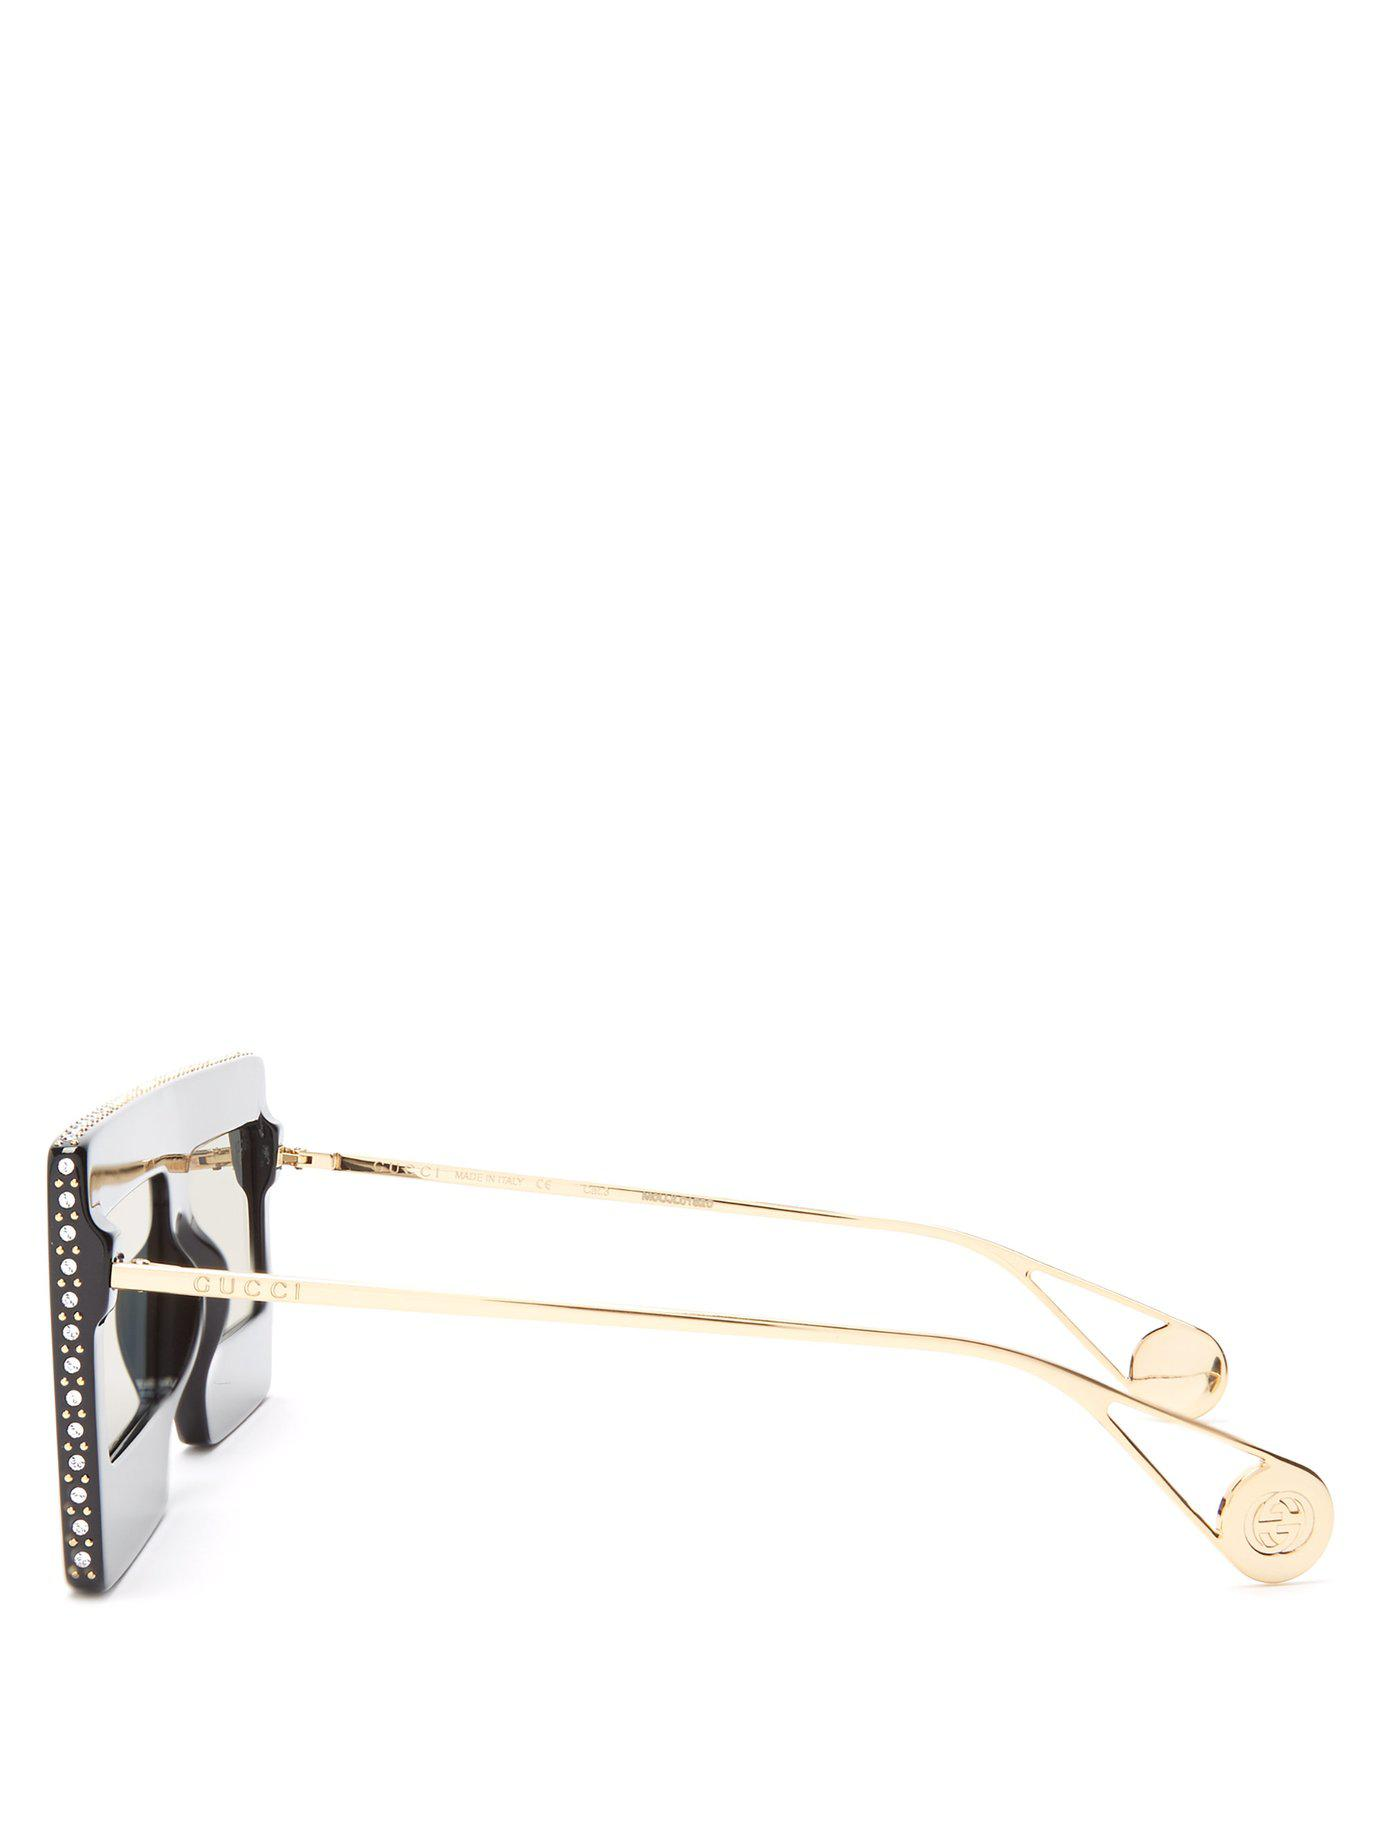 6cb929bb5d8 Gucci - Metallic Hollywood Forever Embellished Mirrored Sunglasses - Lyst.  View fullscreen